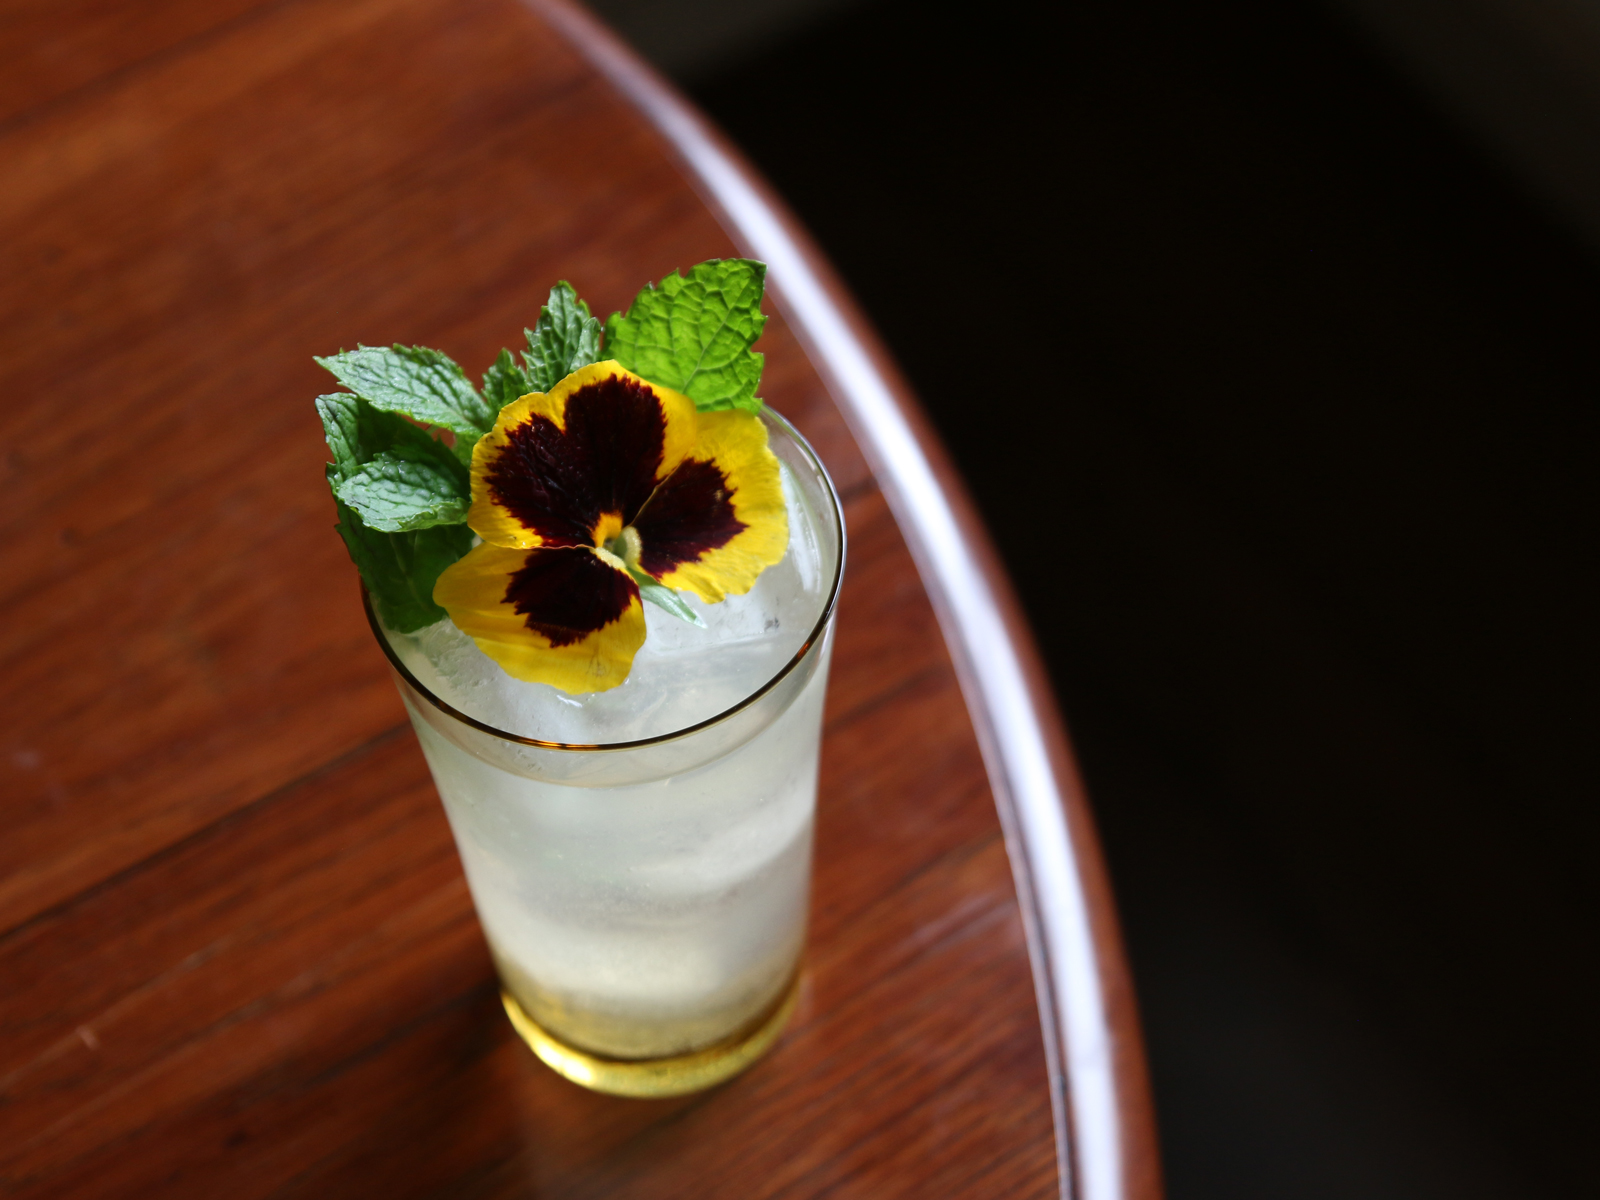 This Italian Lemon-Mint Soda Is Our New Go-To Mixer